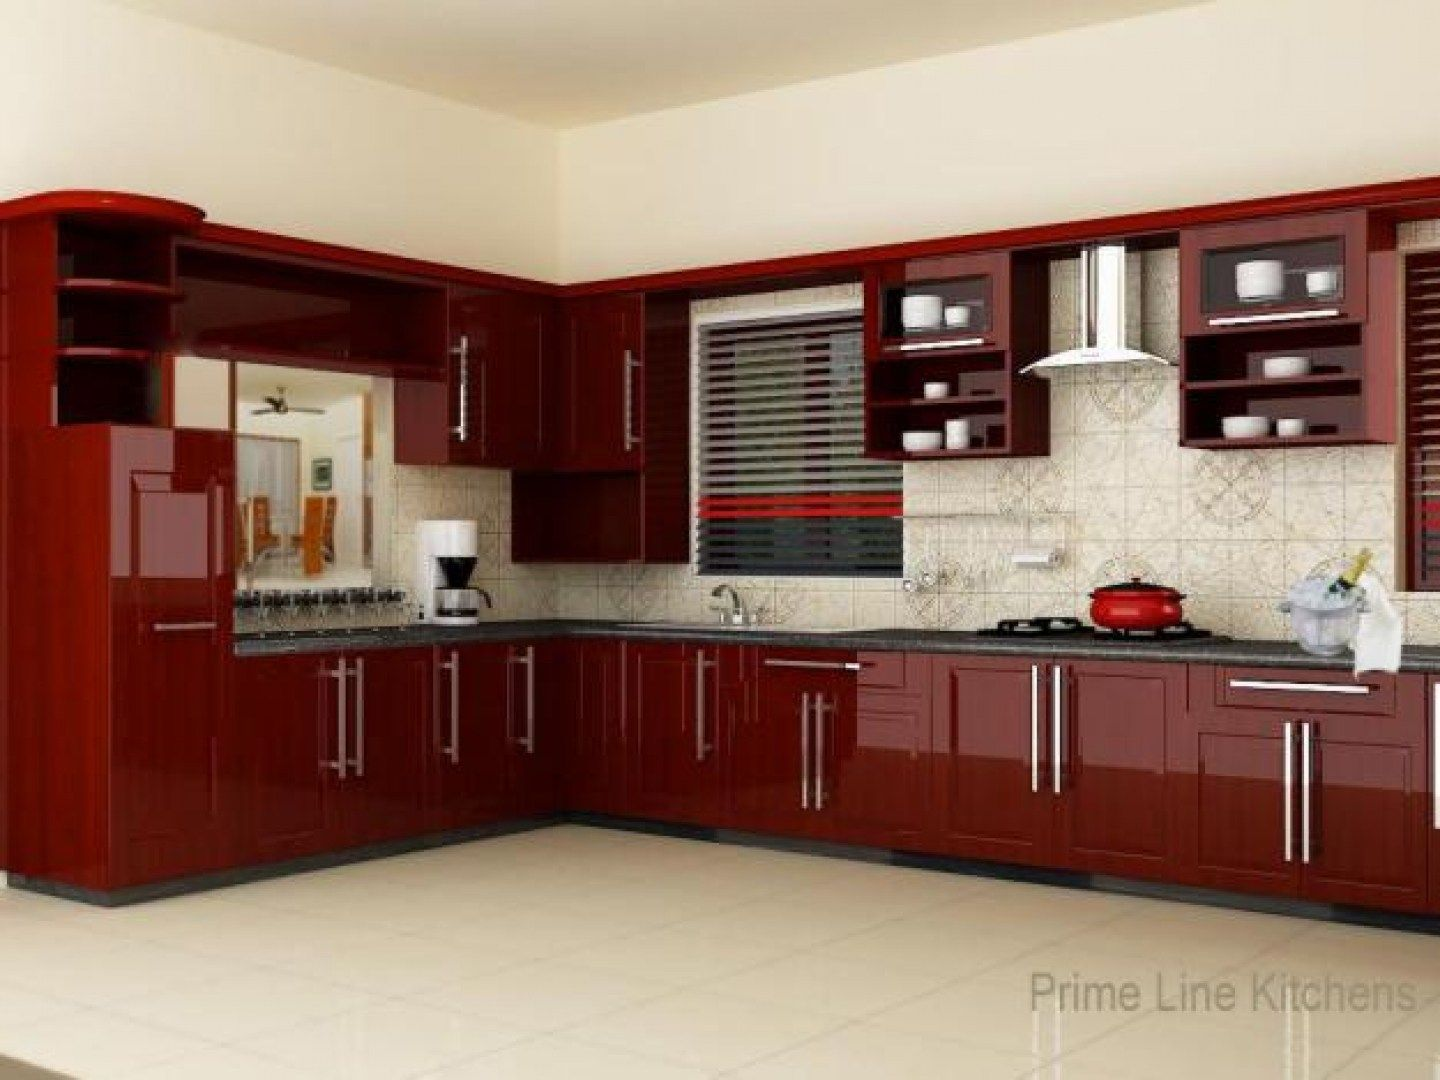 Kitchen design ideas kitchen woodwork designs hyderabad for Kitchen units design ideas